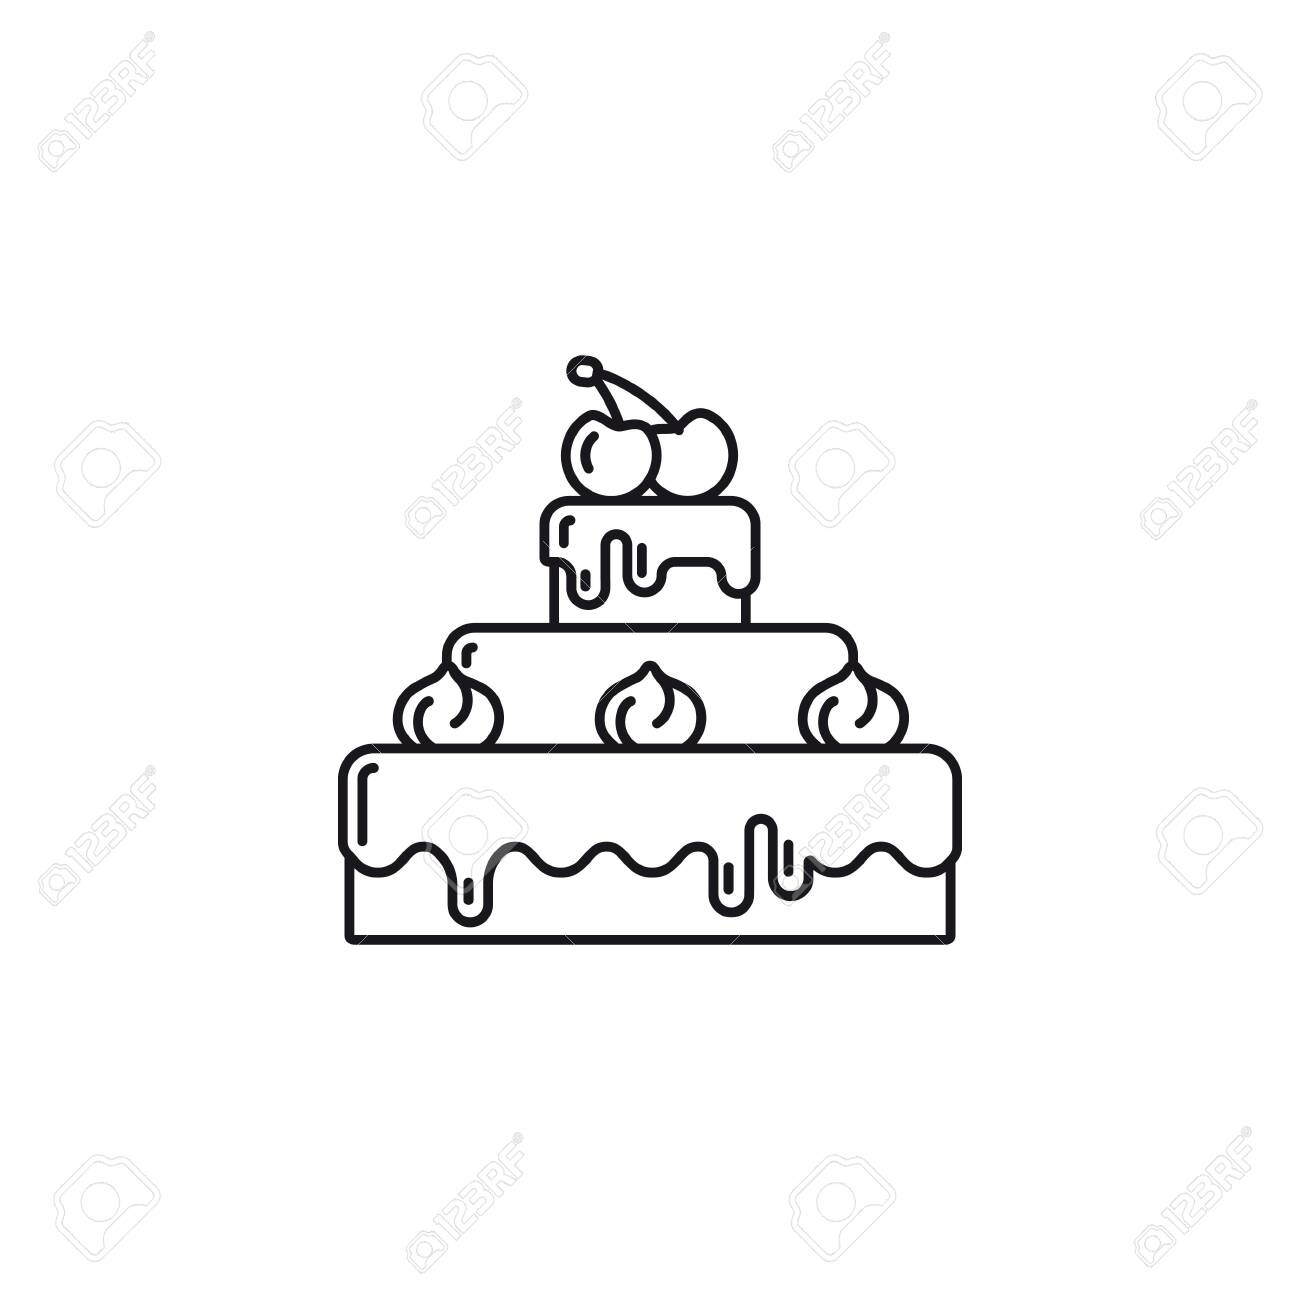 Chocolate cake with cream and cherries on top outline icon. Sweet food vector symbol. - 137872596